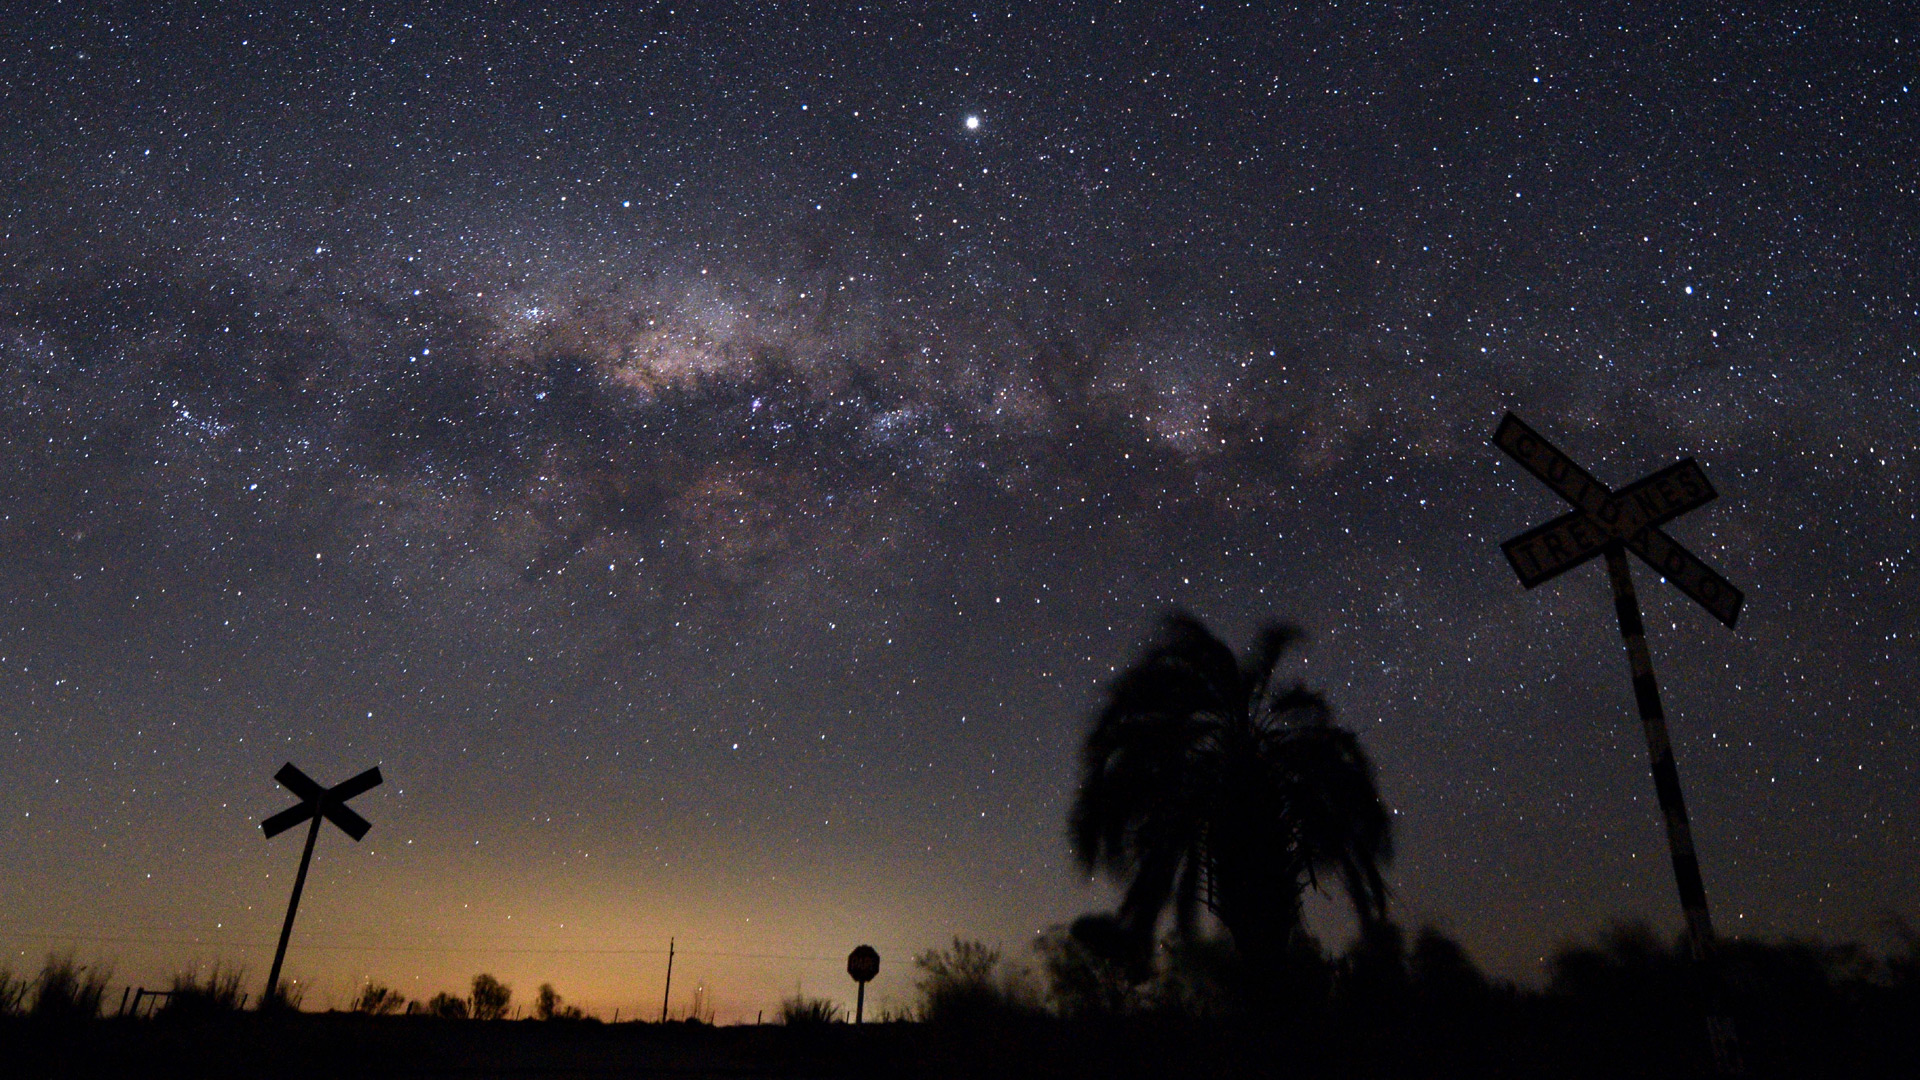 Jupiter, Saturn to form closest 'great conjunction' in 800 years | WHNT.com